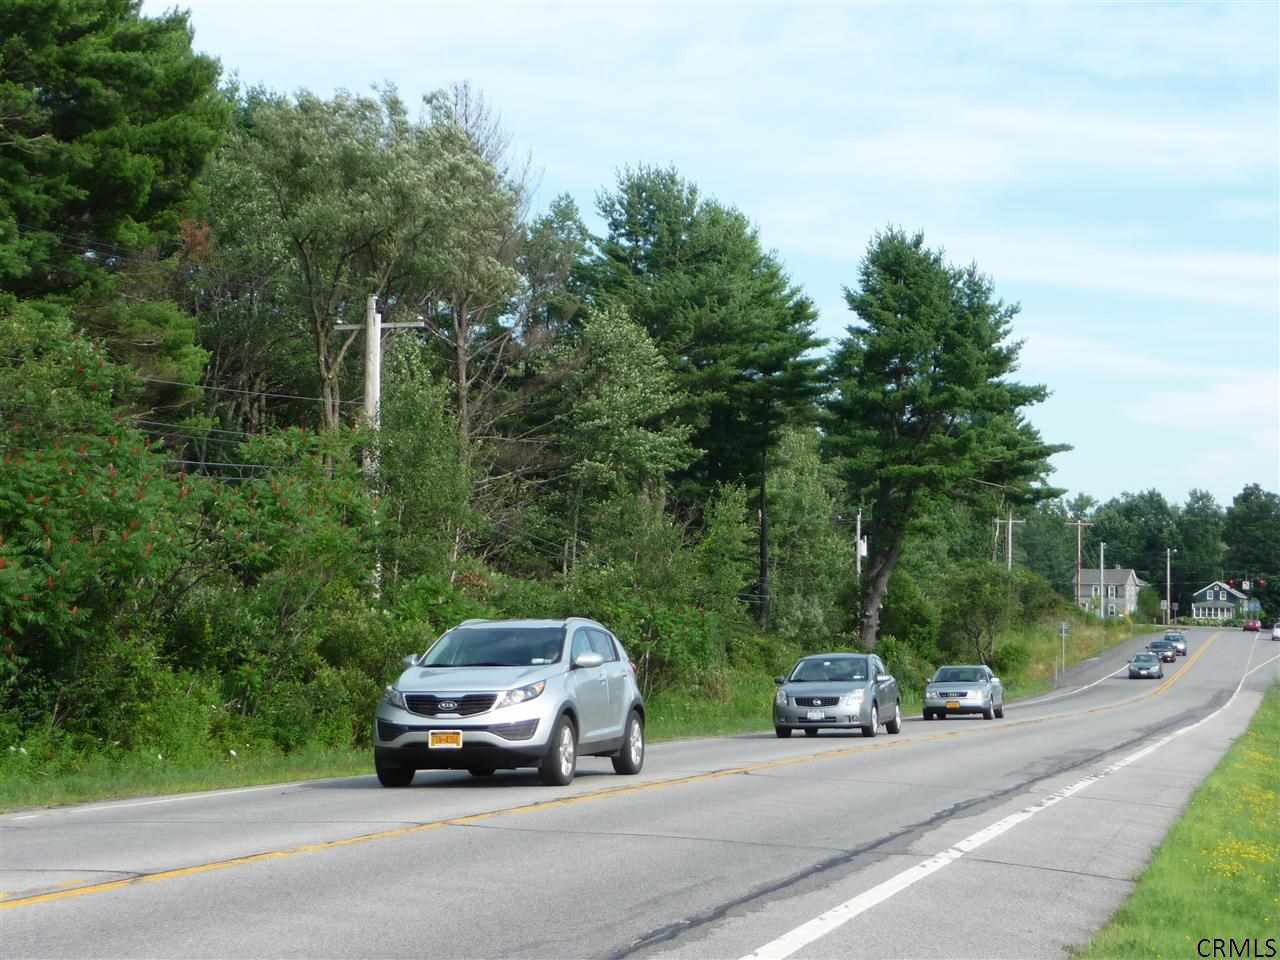 Mayfield image 21